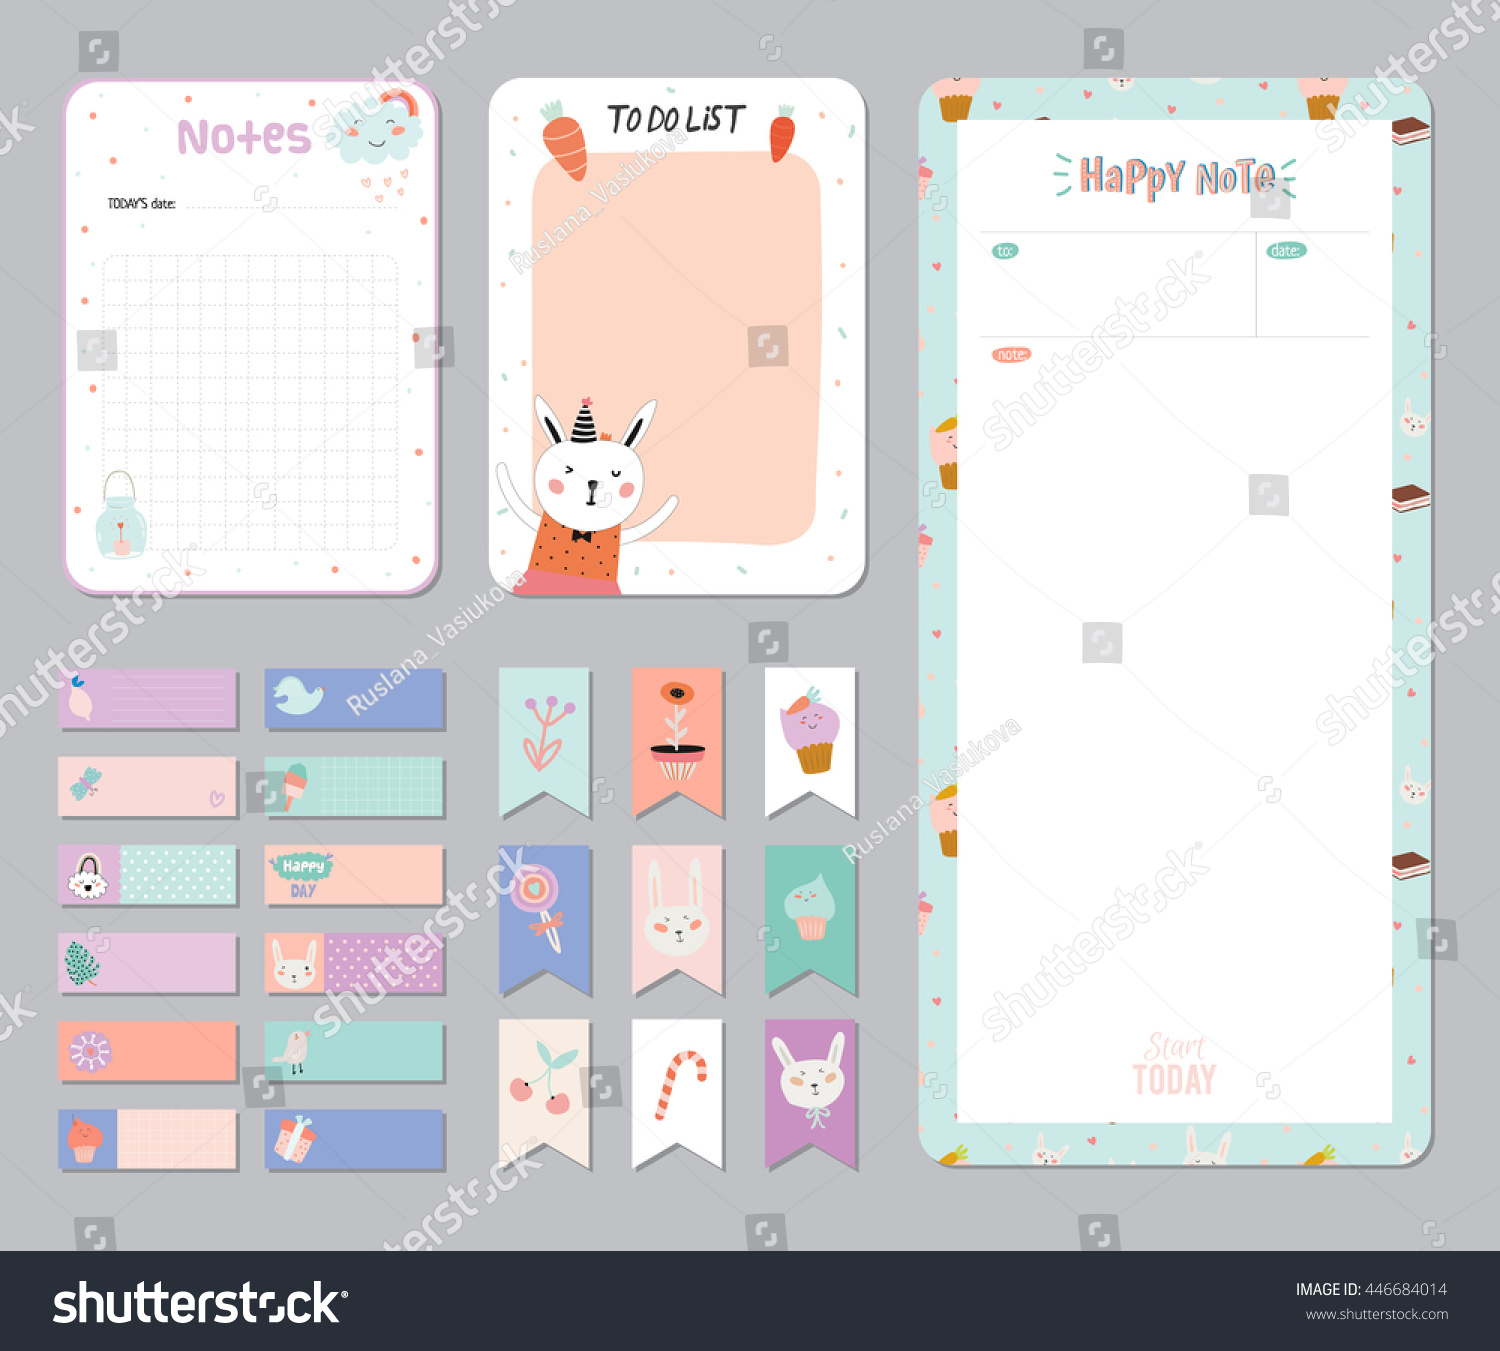 Cute Weekly Calendar Template : Cute calendar daily weekly planner template stock vector